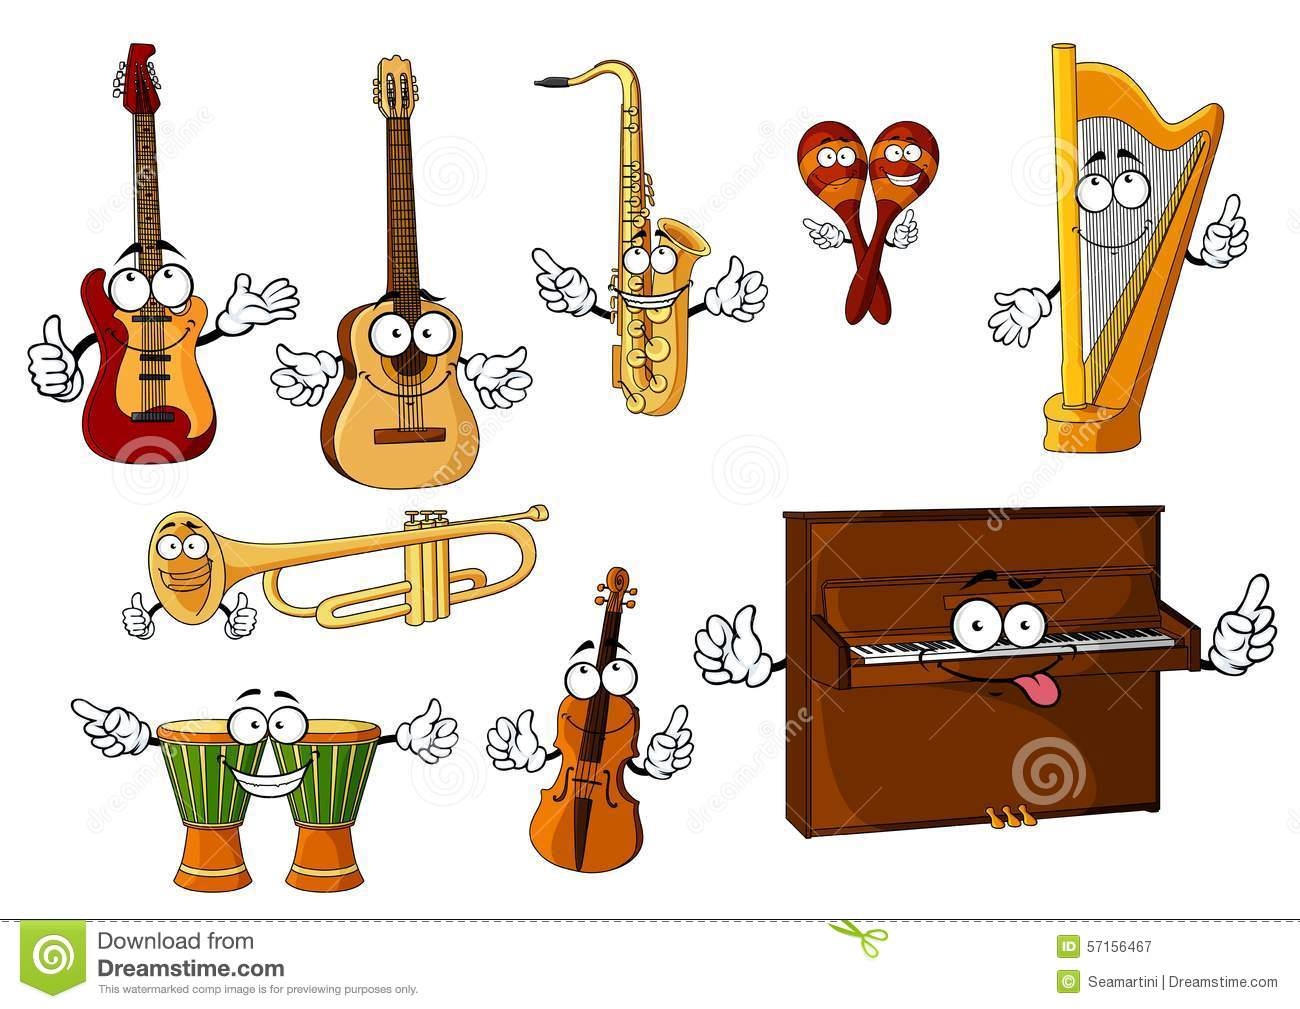 Cartoon Violin Images: Classic Cartoon Musical Instruments Characters Stock